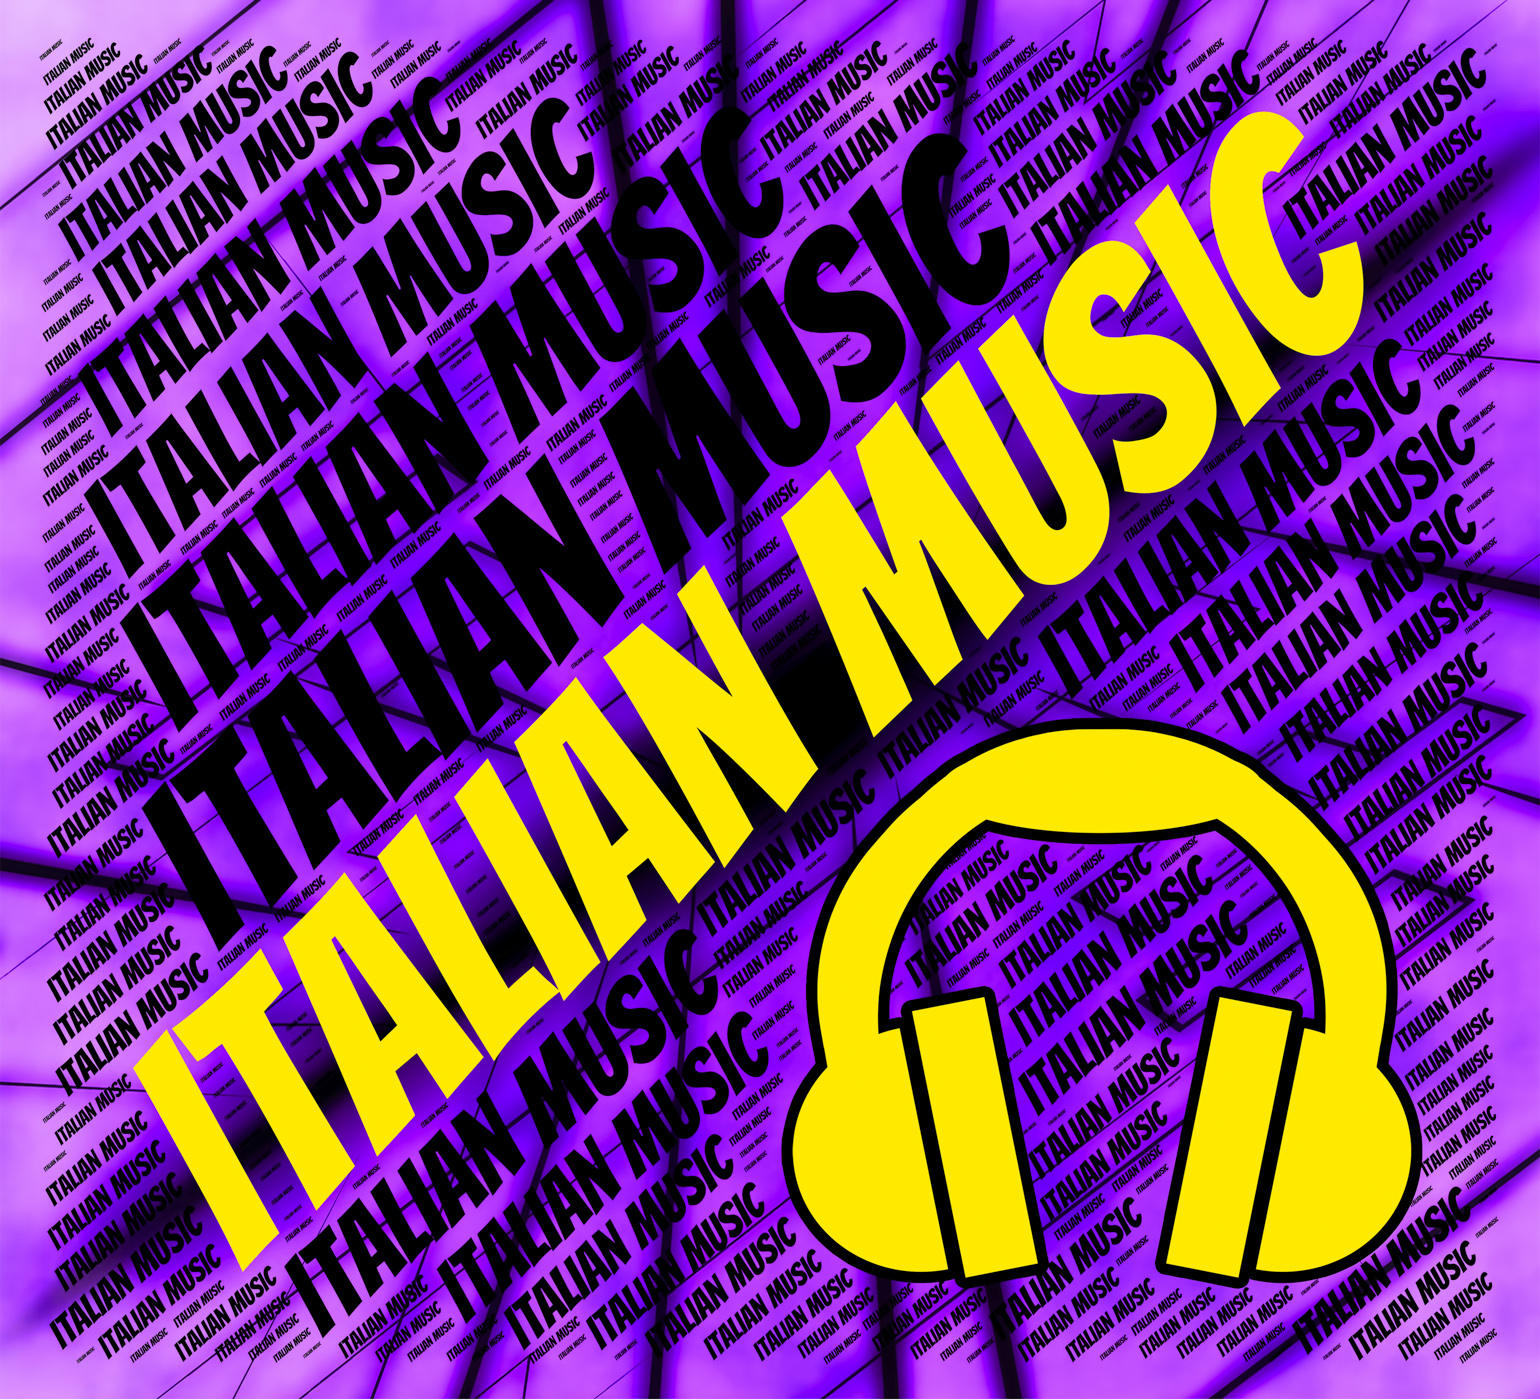 Italian music indicates sound track and audio photo